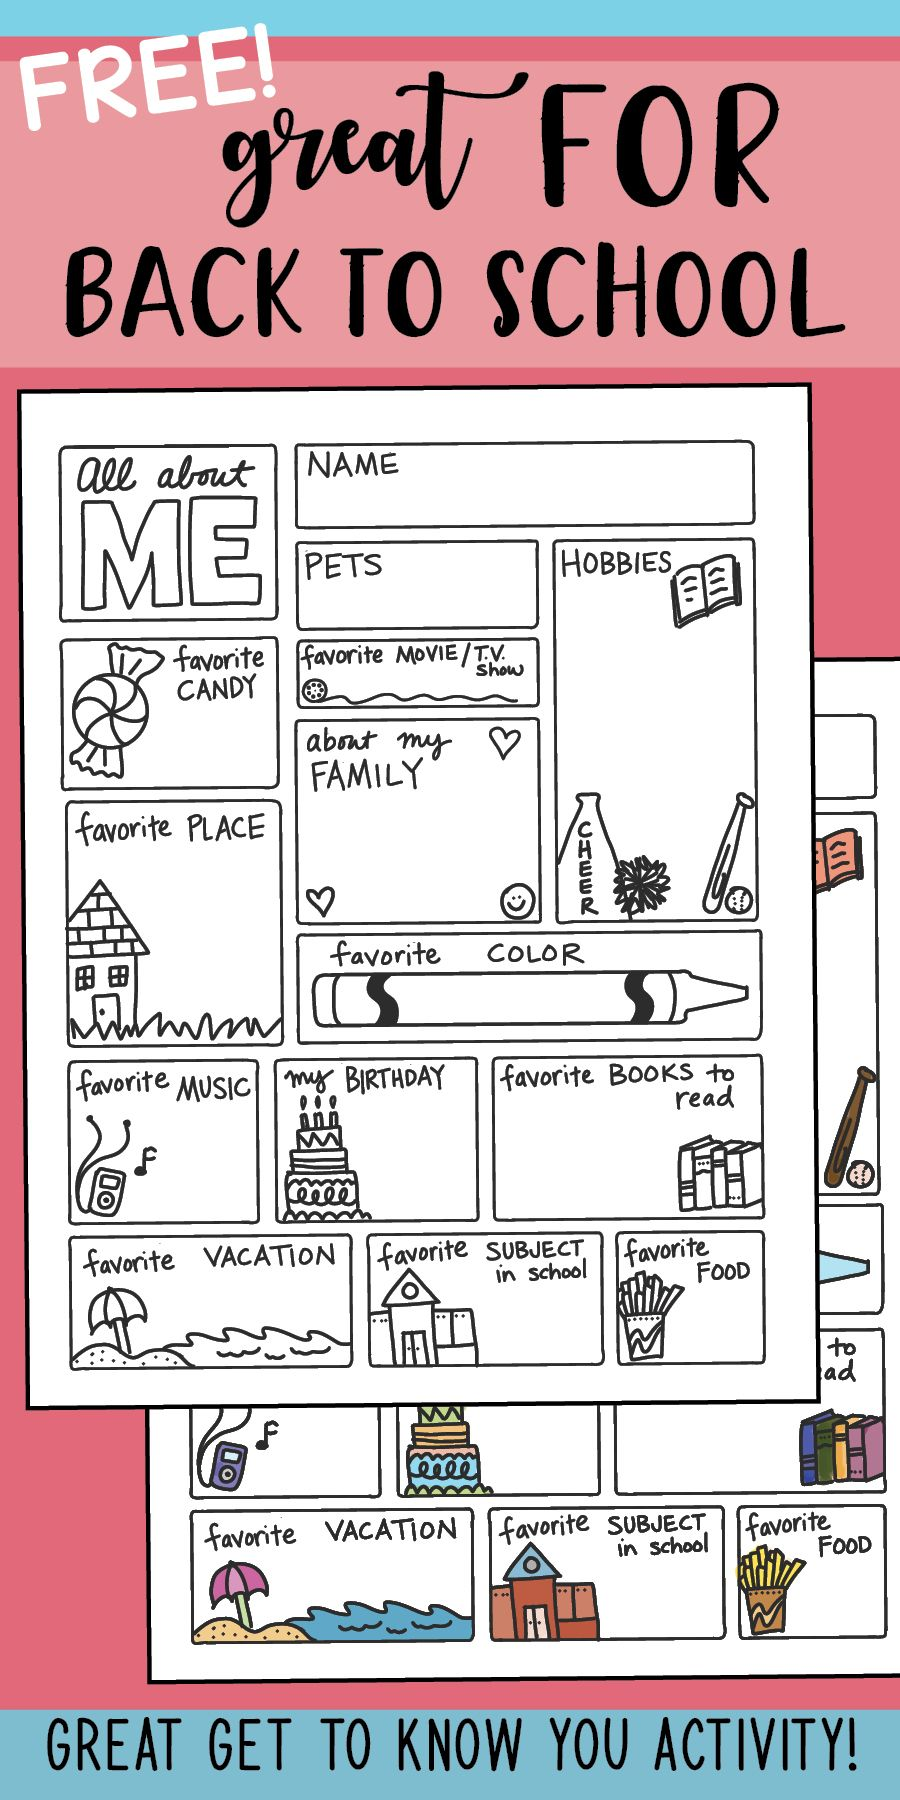 All About ME FREEBIE by Science & Math Doodles #backtoschool